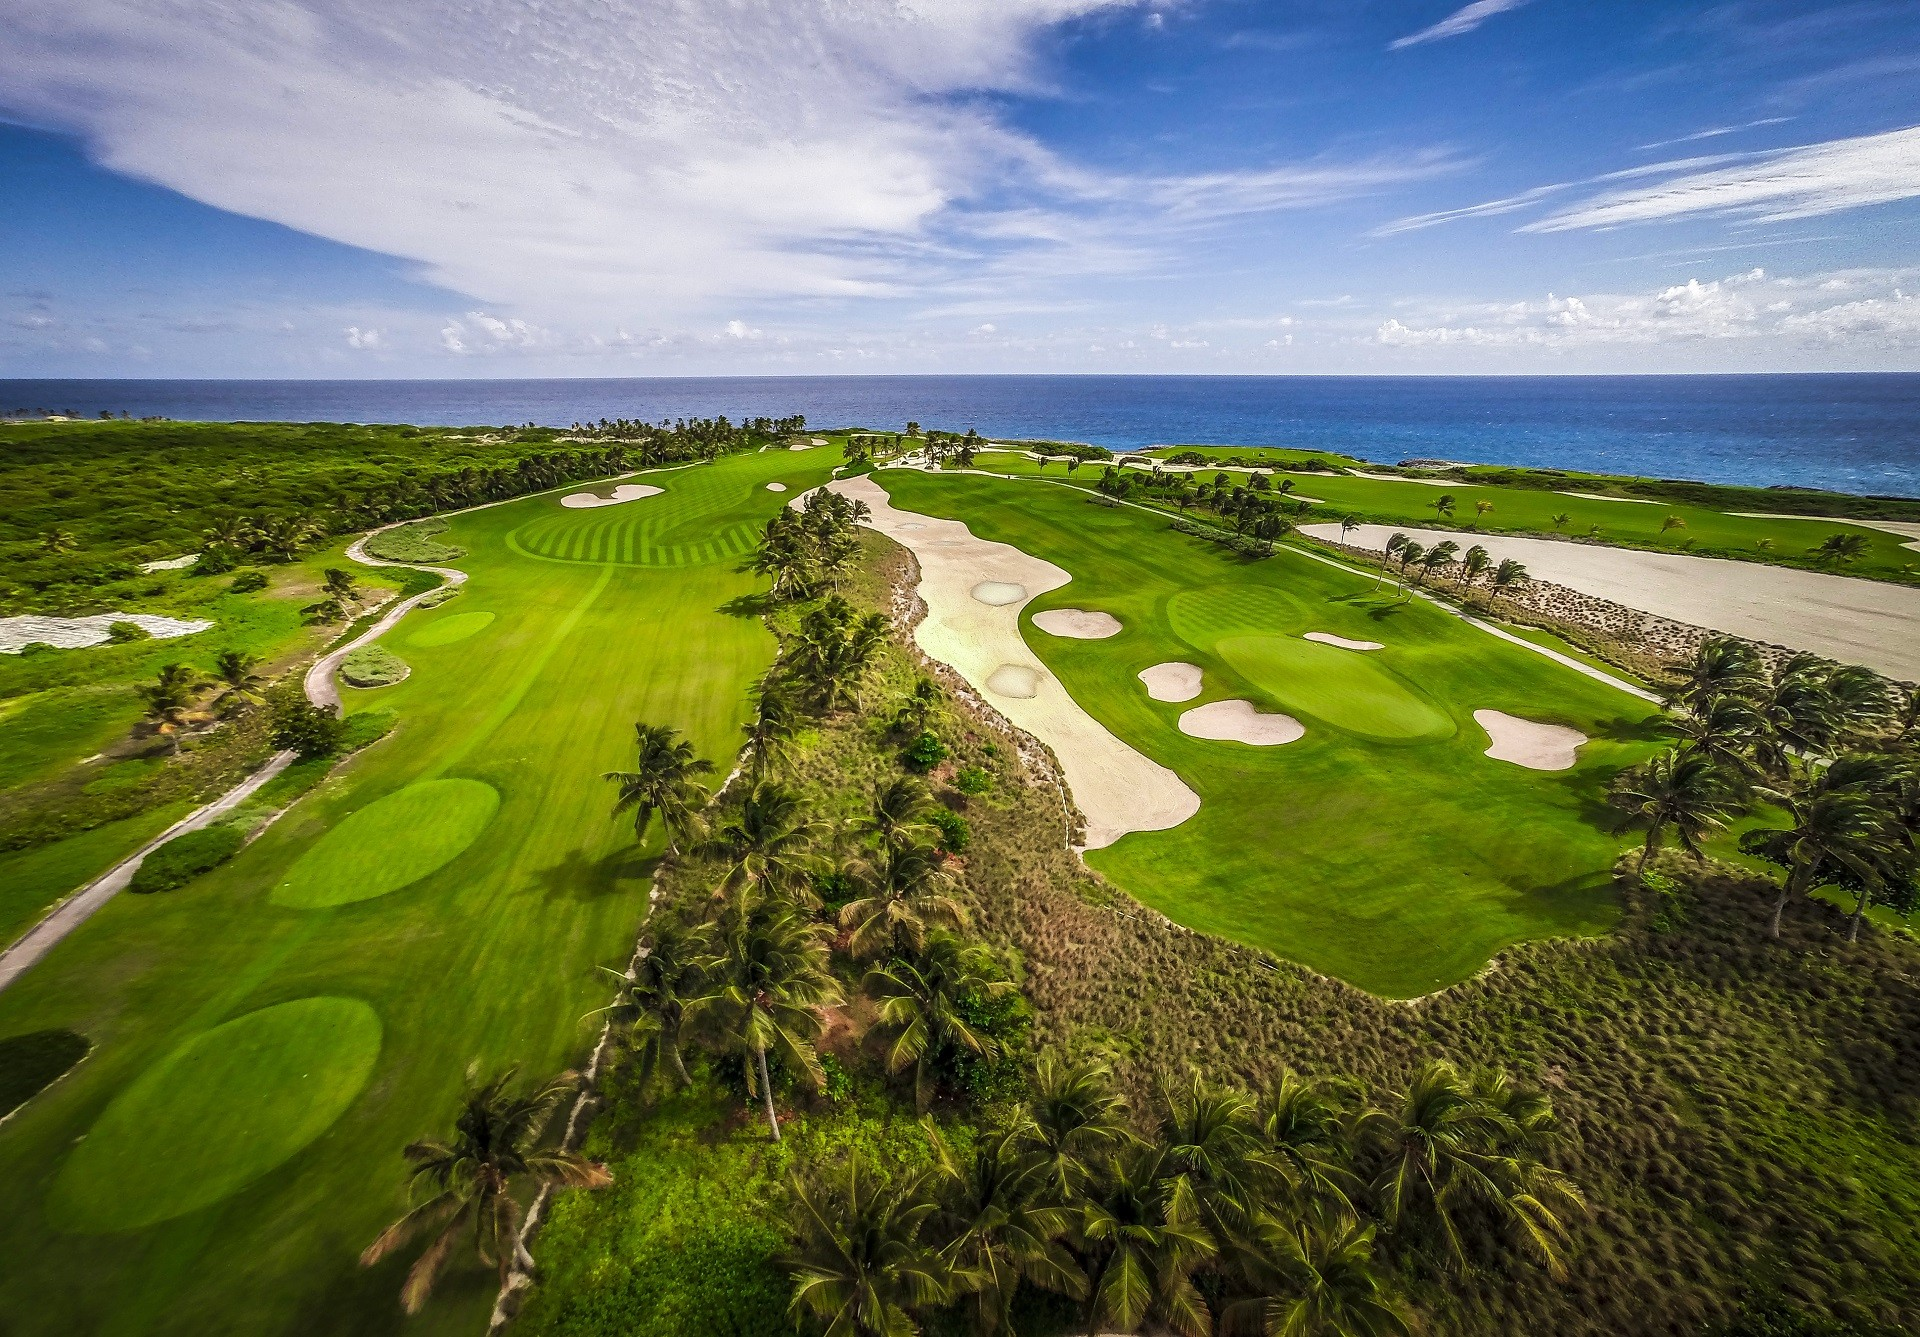 Puntacana Resort & Club is home to the Caribbean's